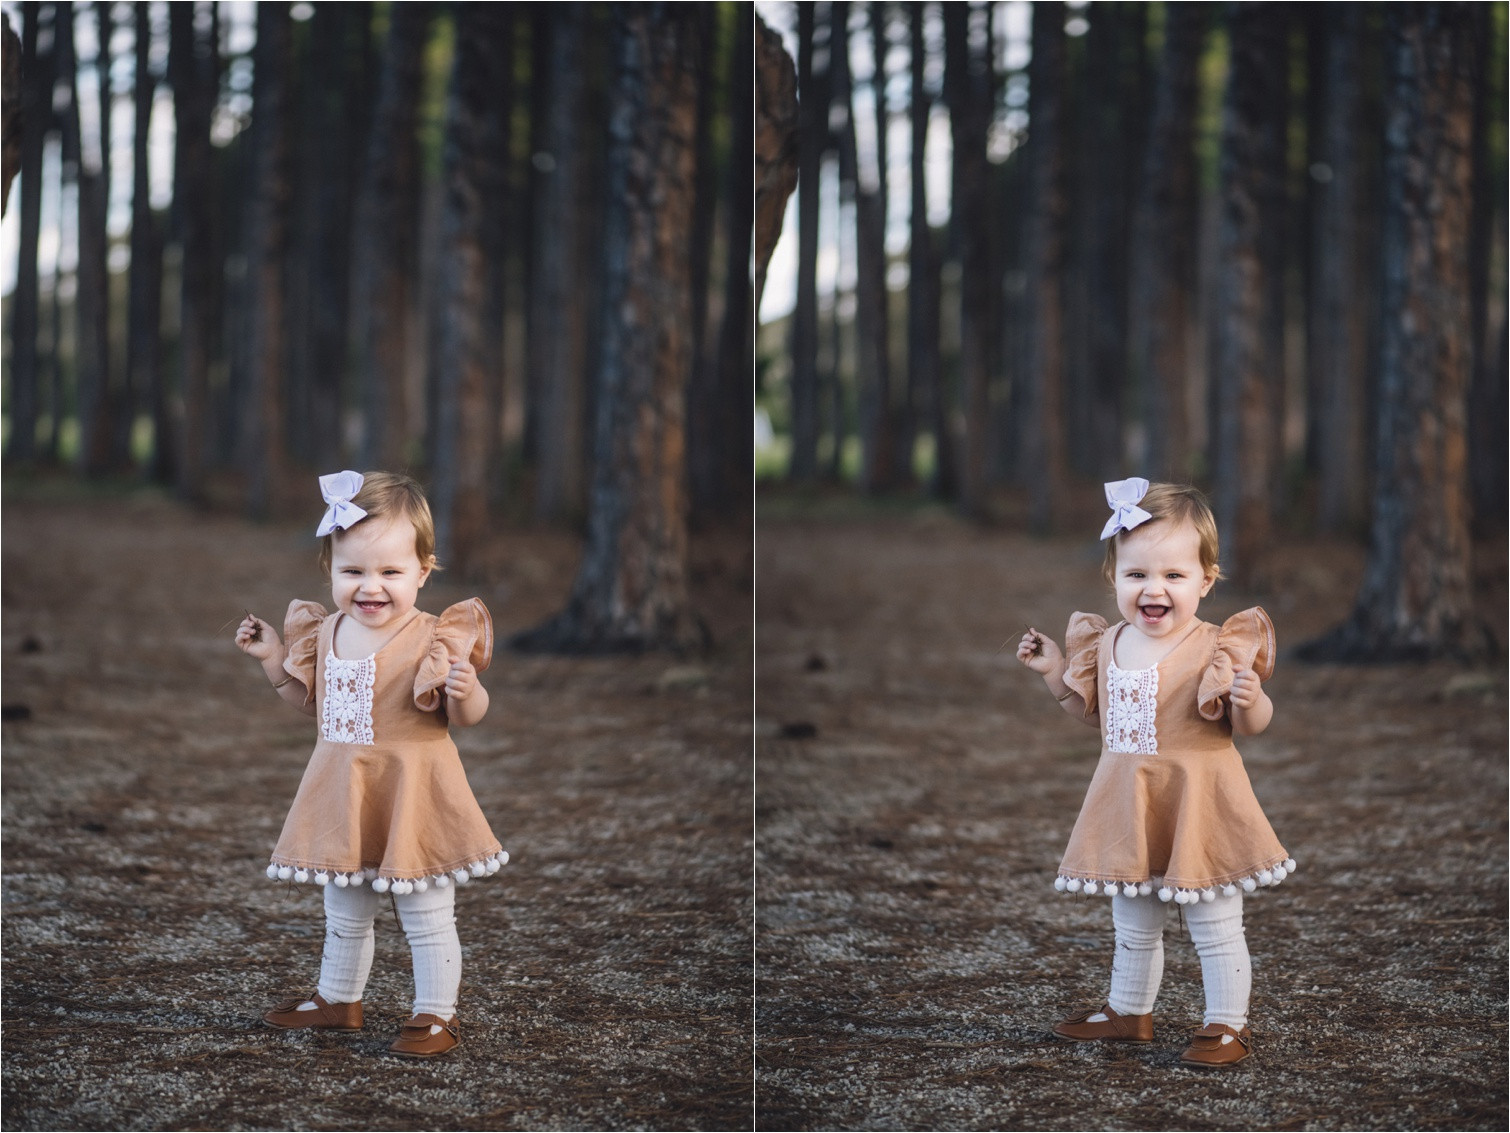 Pine_forest_family_photography_shoot - Gold Coast Family Photographer_0004.jpg